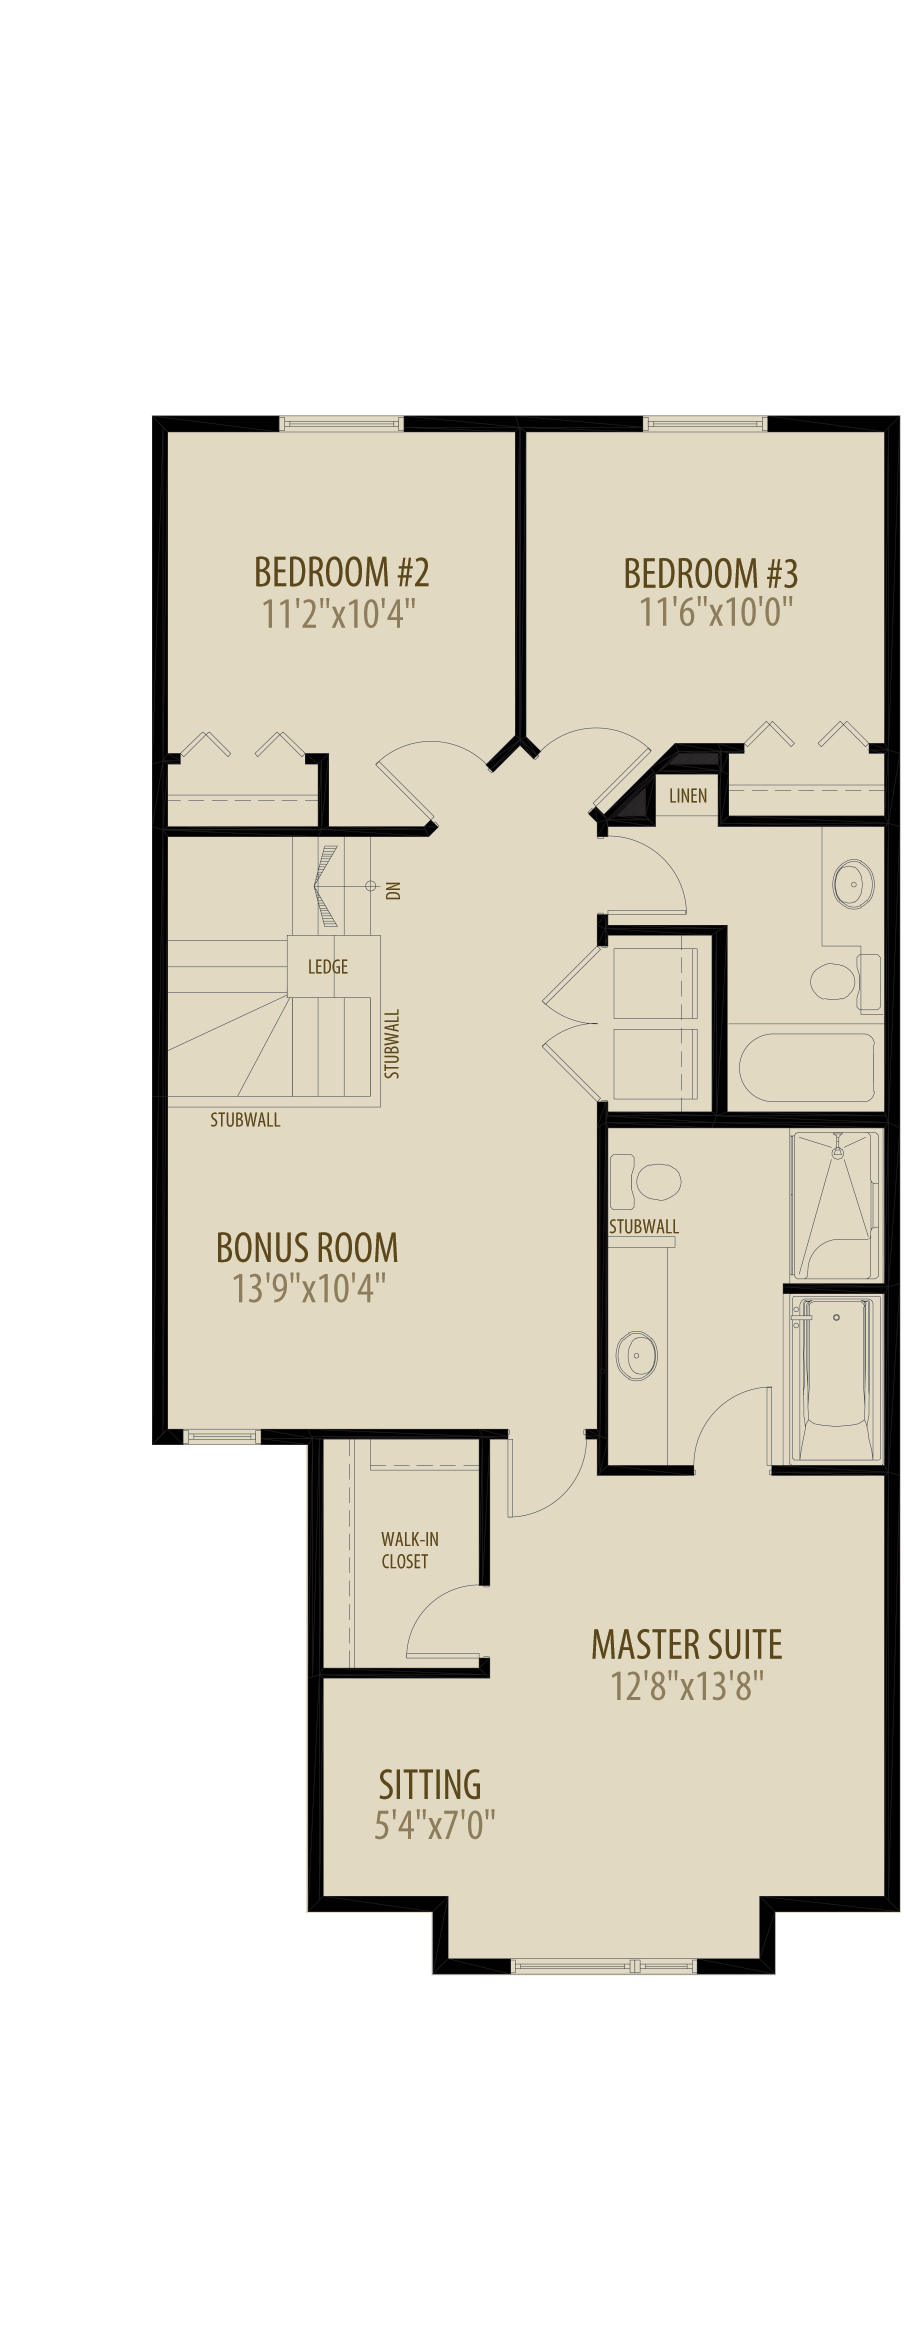 Optional Bonus Room adds 241 sq ft